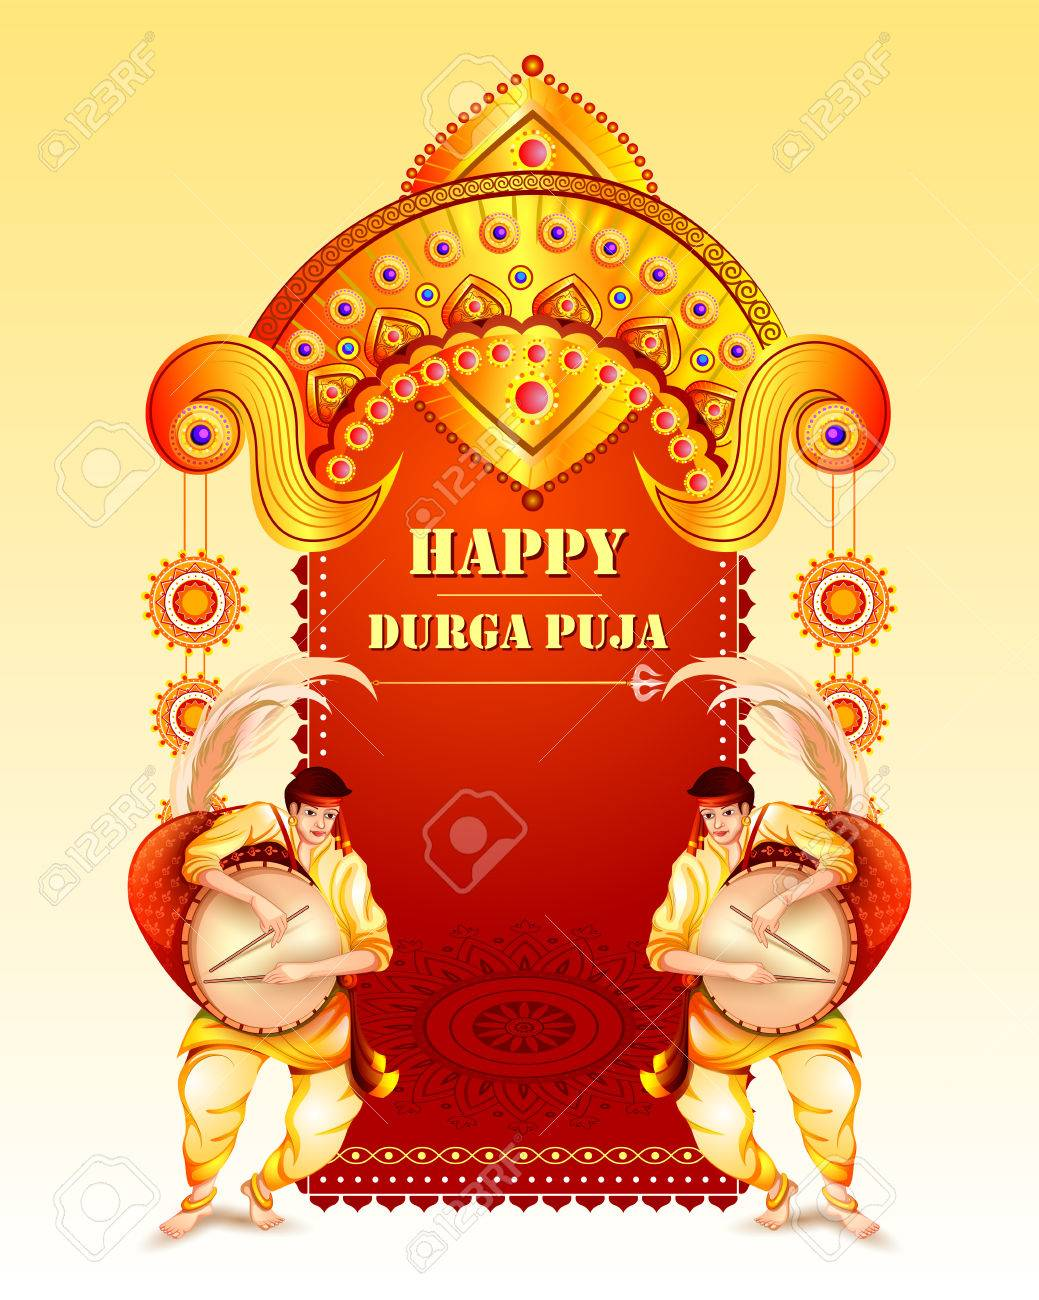 Happy durga puja festival background for india holiday dussehra happy durga puja festival background for india holiday dussehra stock vector 85642220 kristyandbryce Image collections